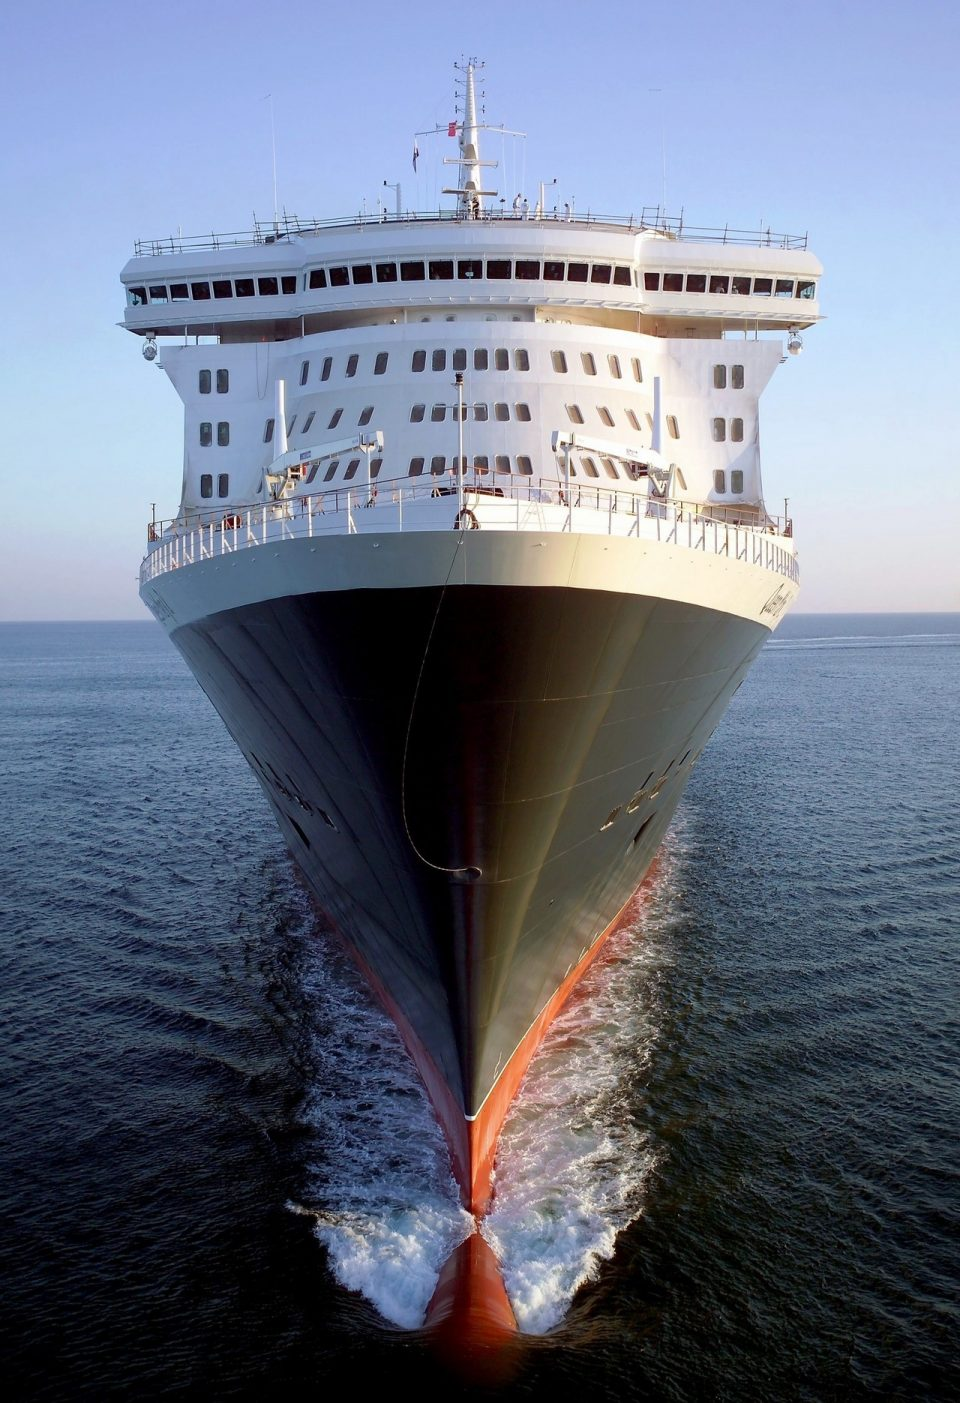 Queen Mary 2 .